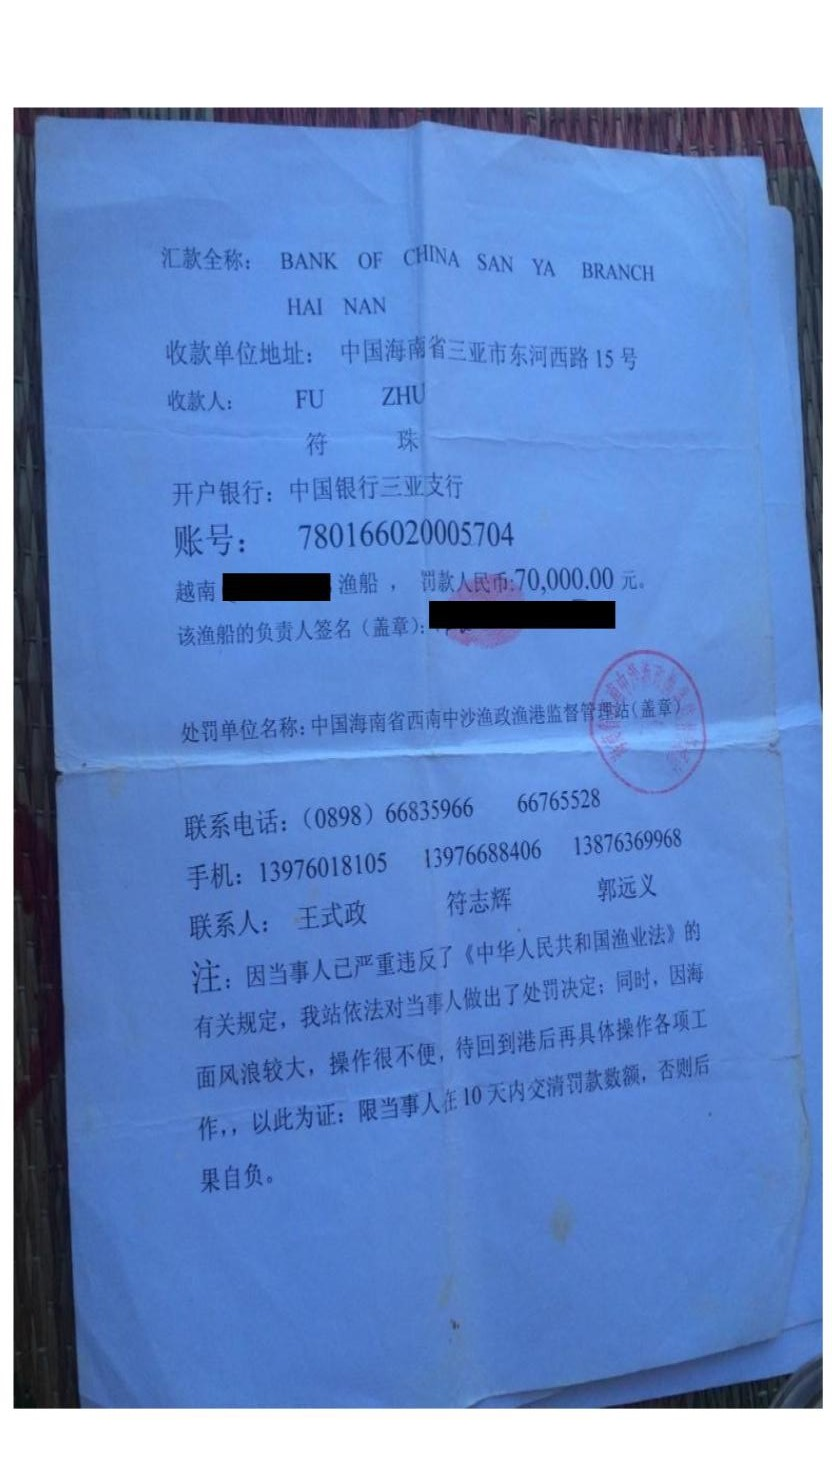 Official Chinese document with ransom demand. Black boxes have been added to protect the fishing vessel number and name of the fisherman with his fingerprint.